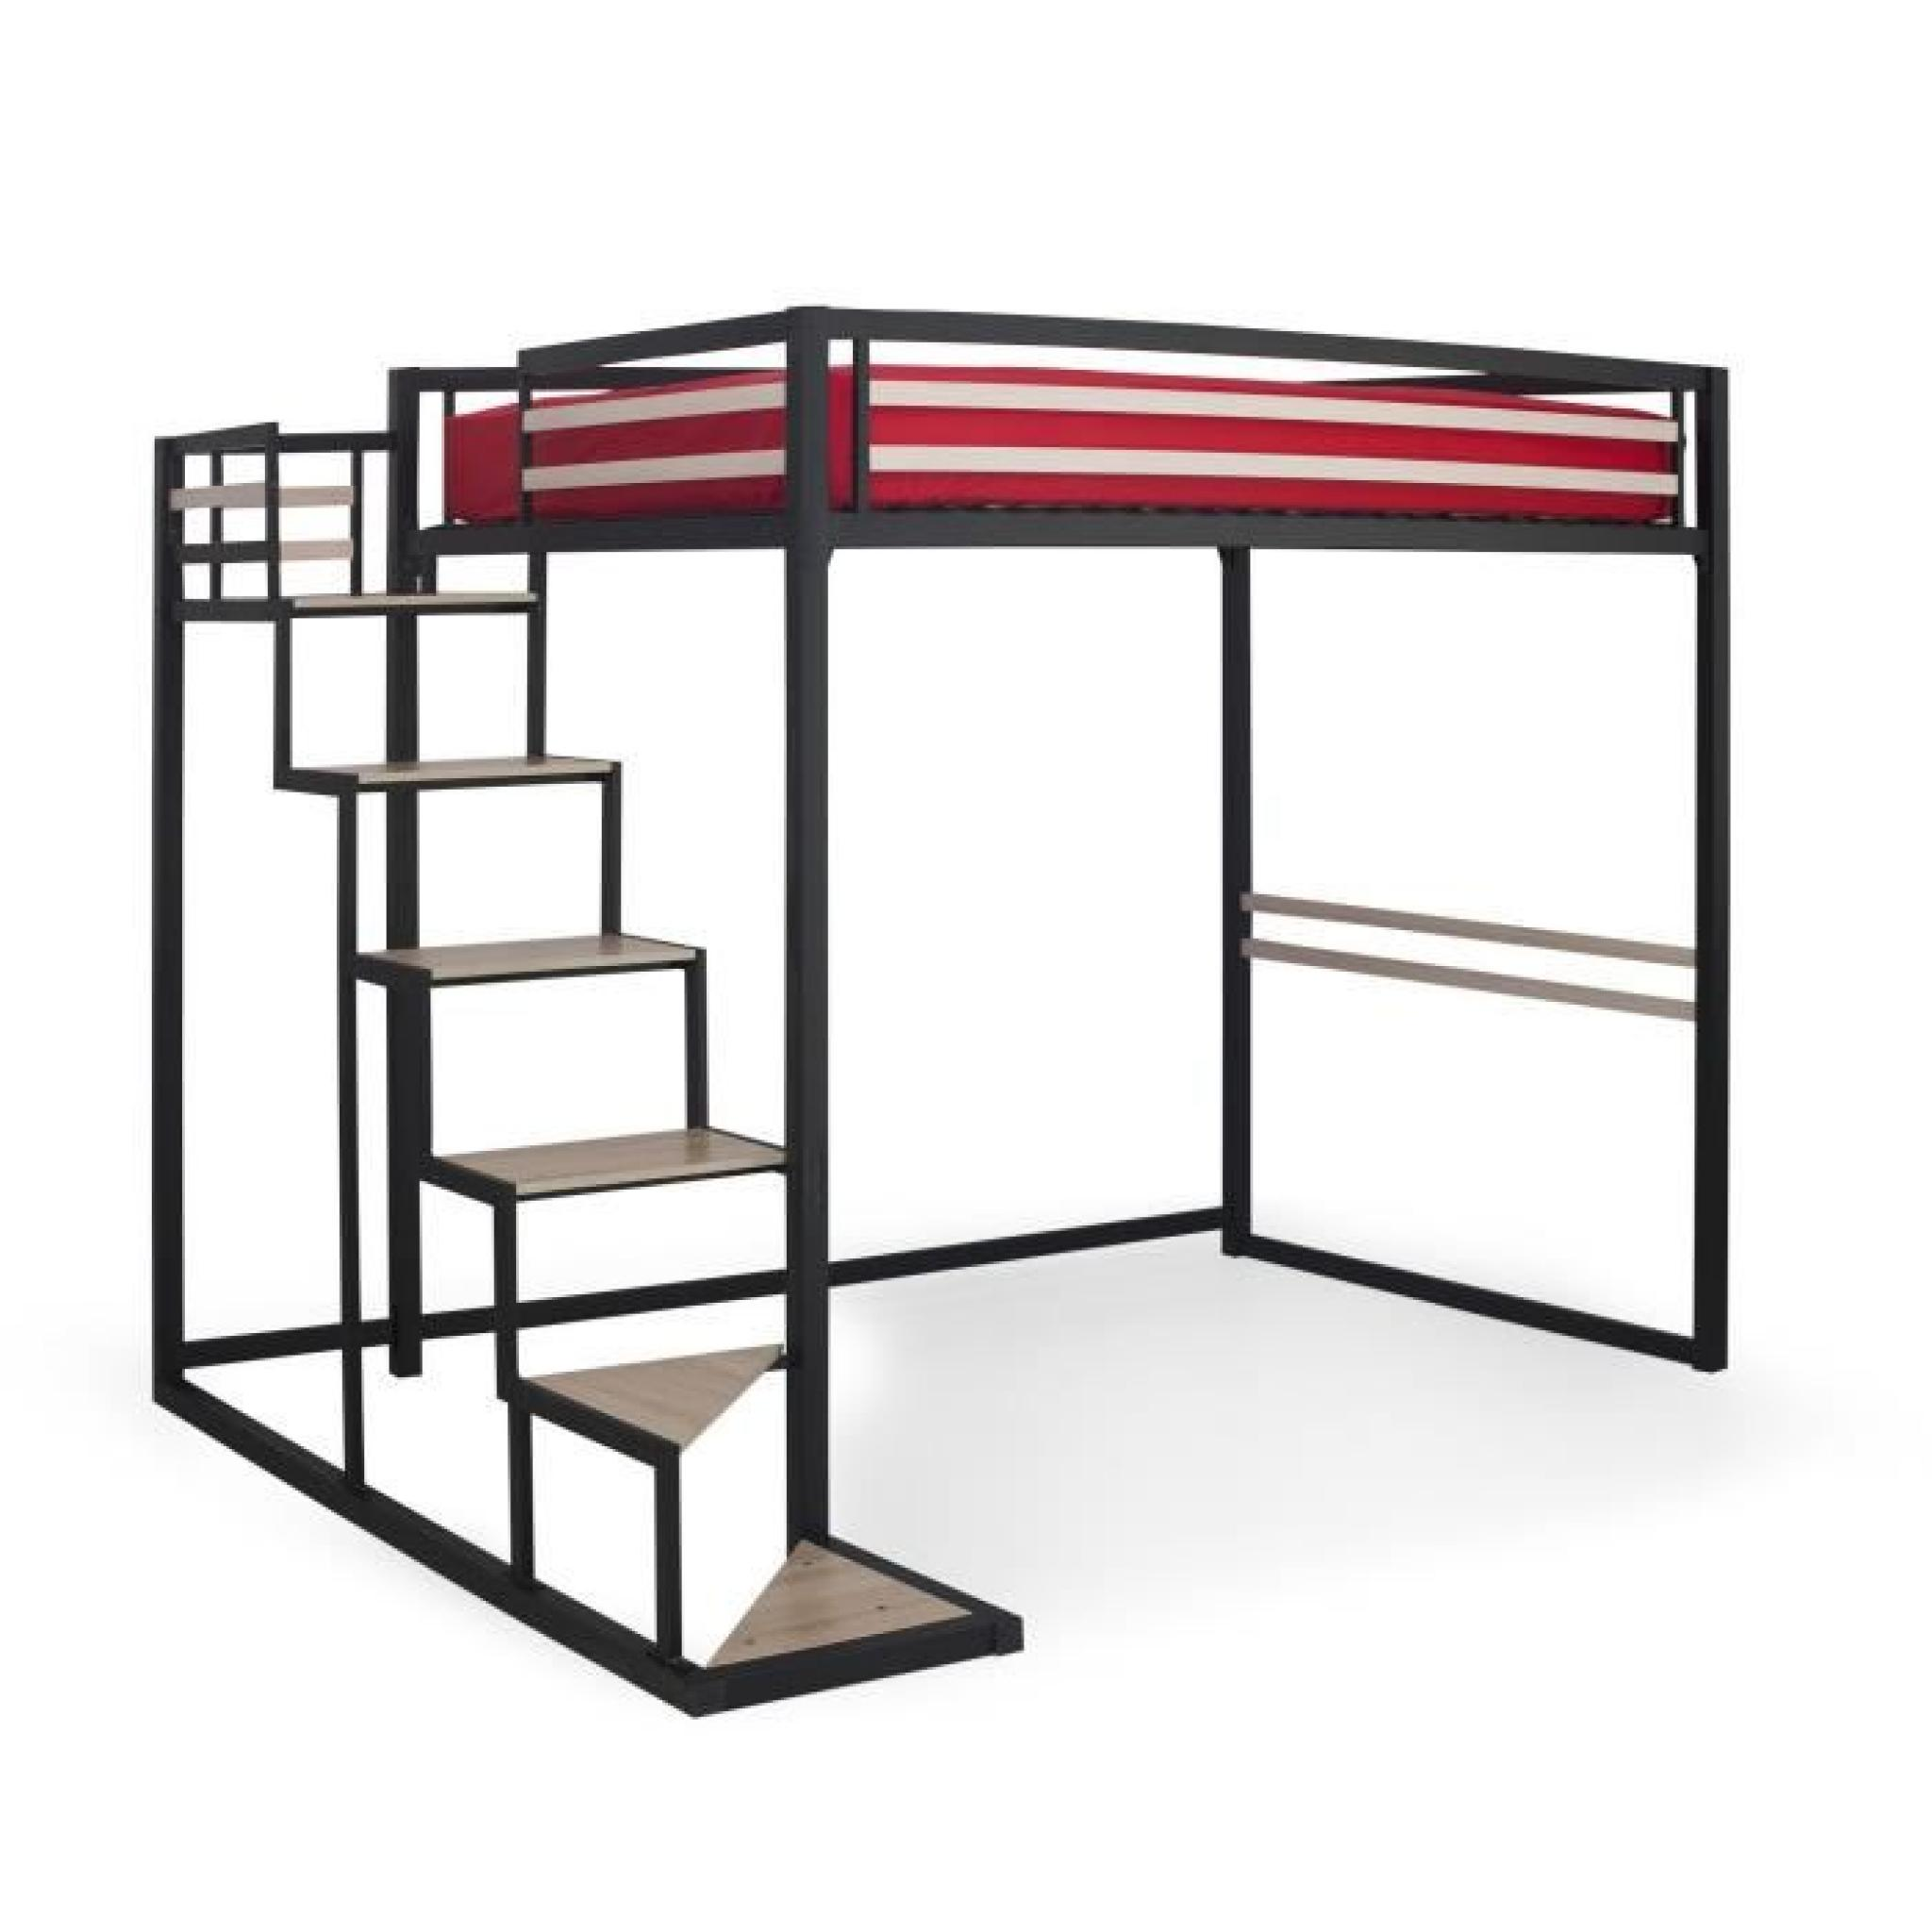 home mezzanine 140x200 achat vente lit mezzanine pas cher couleur et. Black Bedroom Furniture Sets. Home Design Ideas